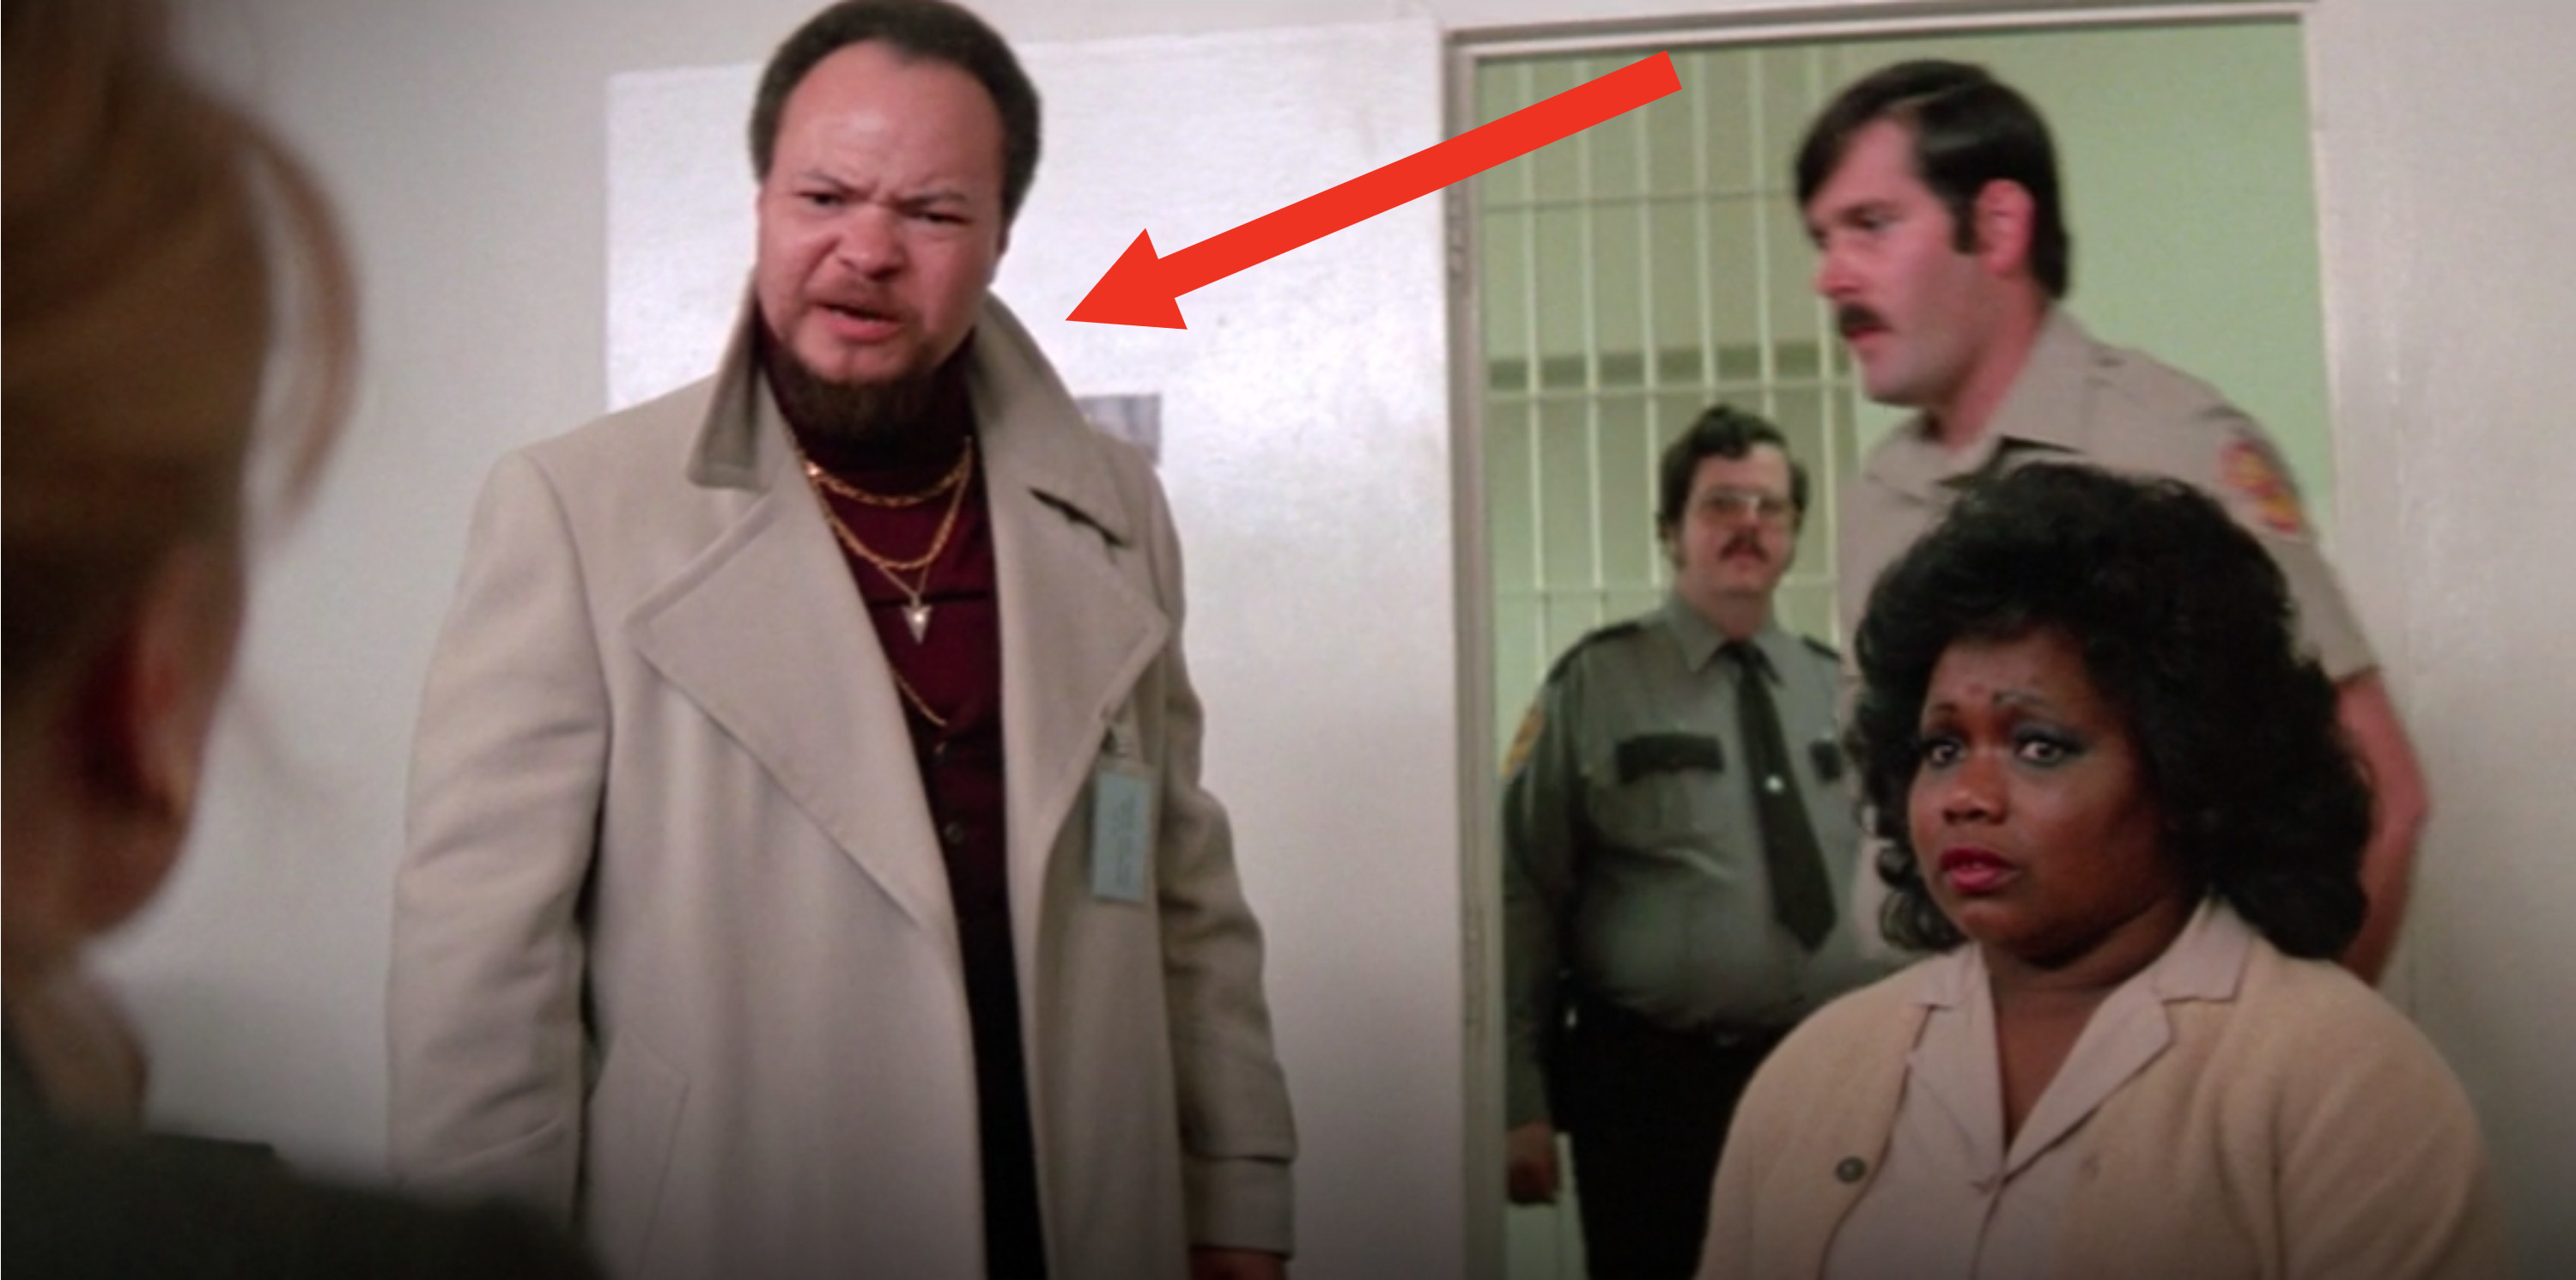 """Stephen stands next to his on-screen wife in """"Marie: A True Story,"""" in the background are two cops and seen slightly out-of-frame to the left is the back of Sissy's head"""